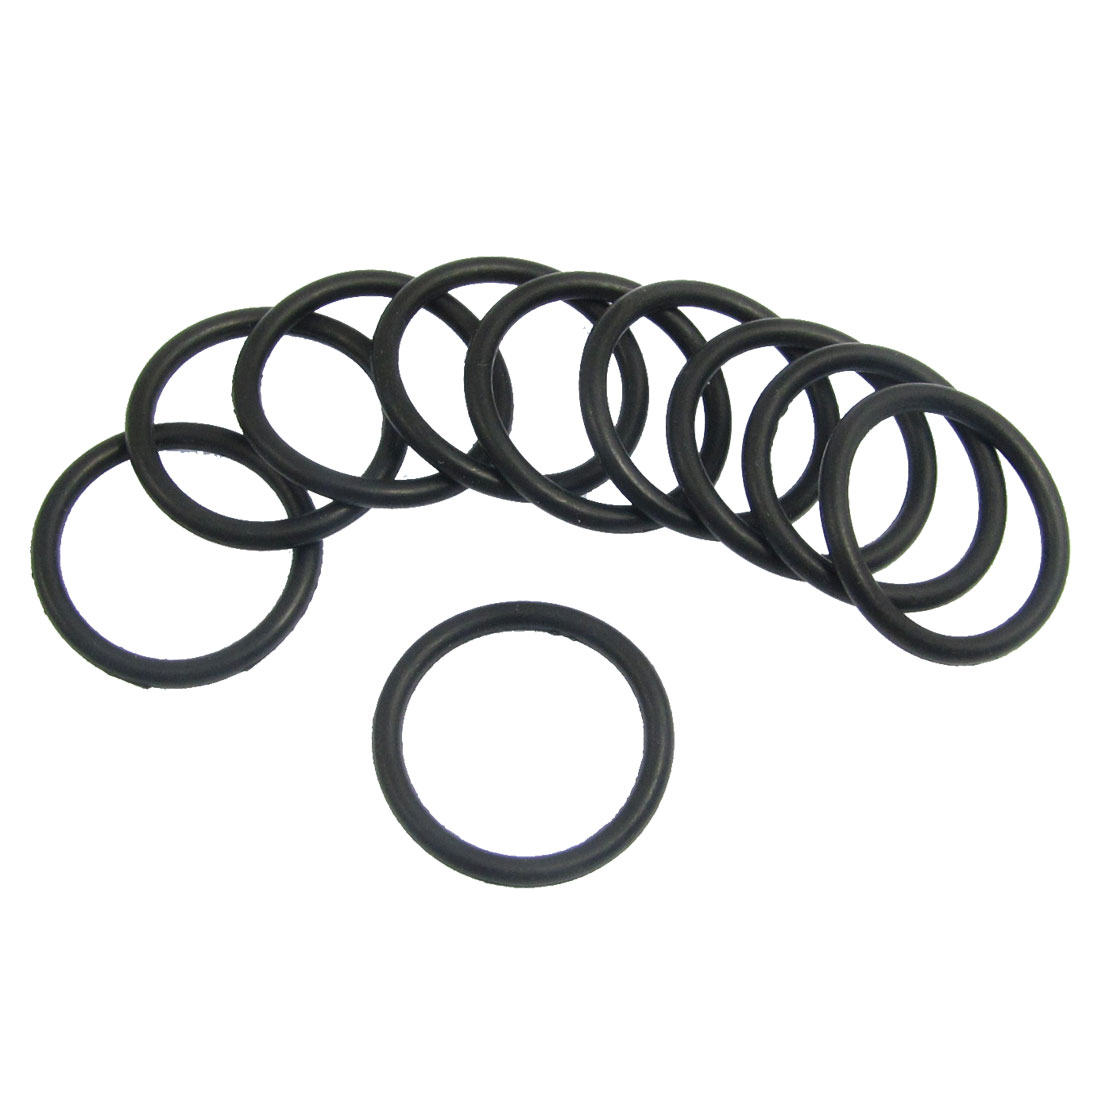 10 Pcs 21.2mm x 2.65mm Black Silicone O Rings Oil Seals Gaskets